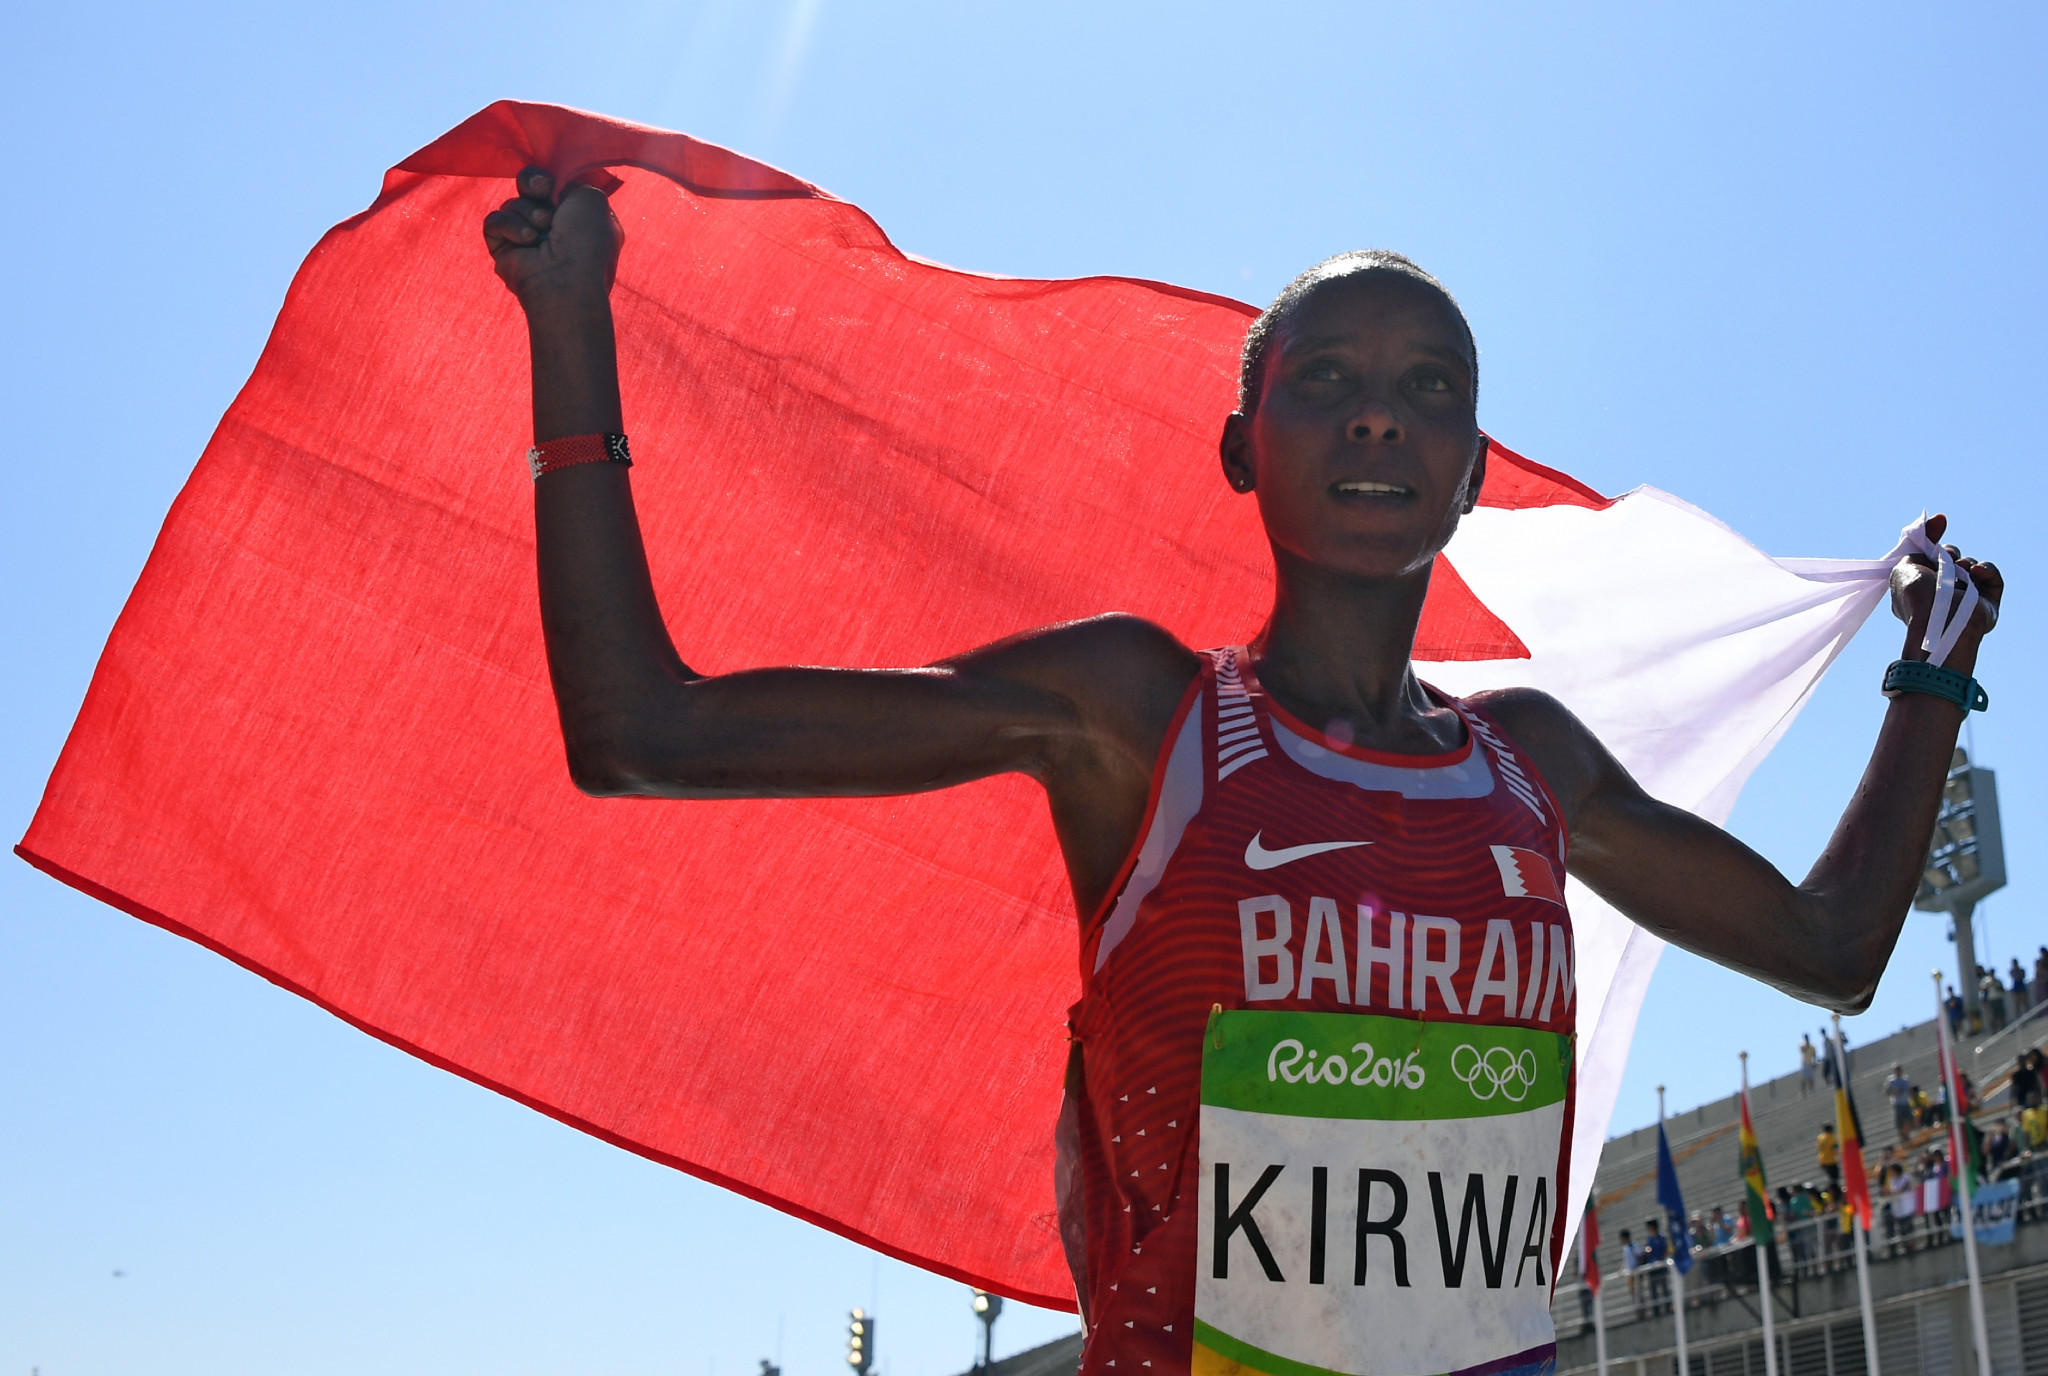 Bahrain Olympic marathon silver medallist officially banned for four years after positive EPO test